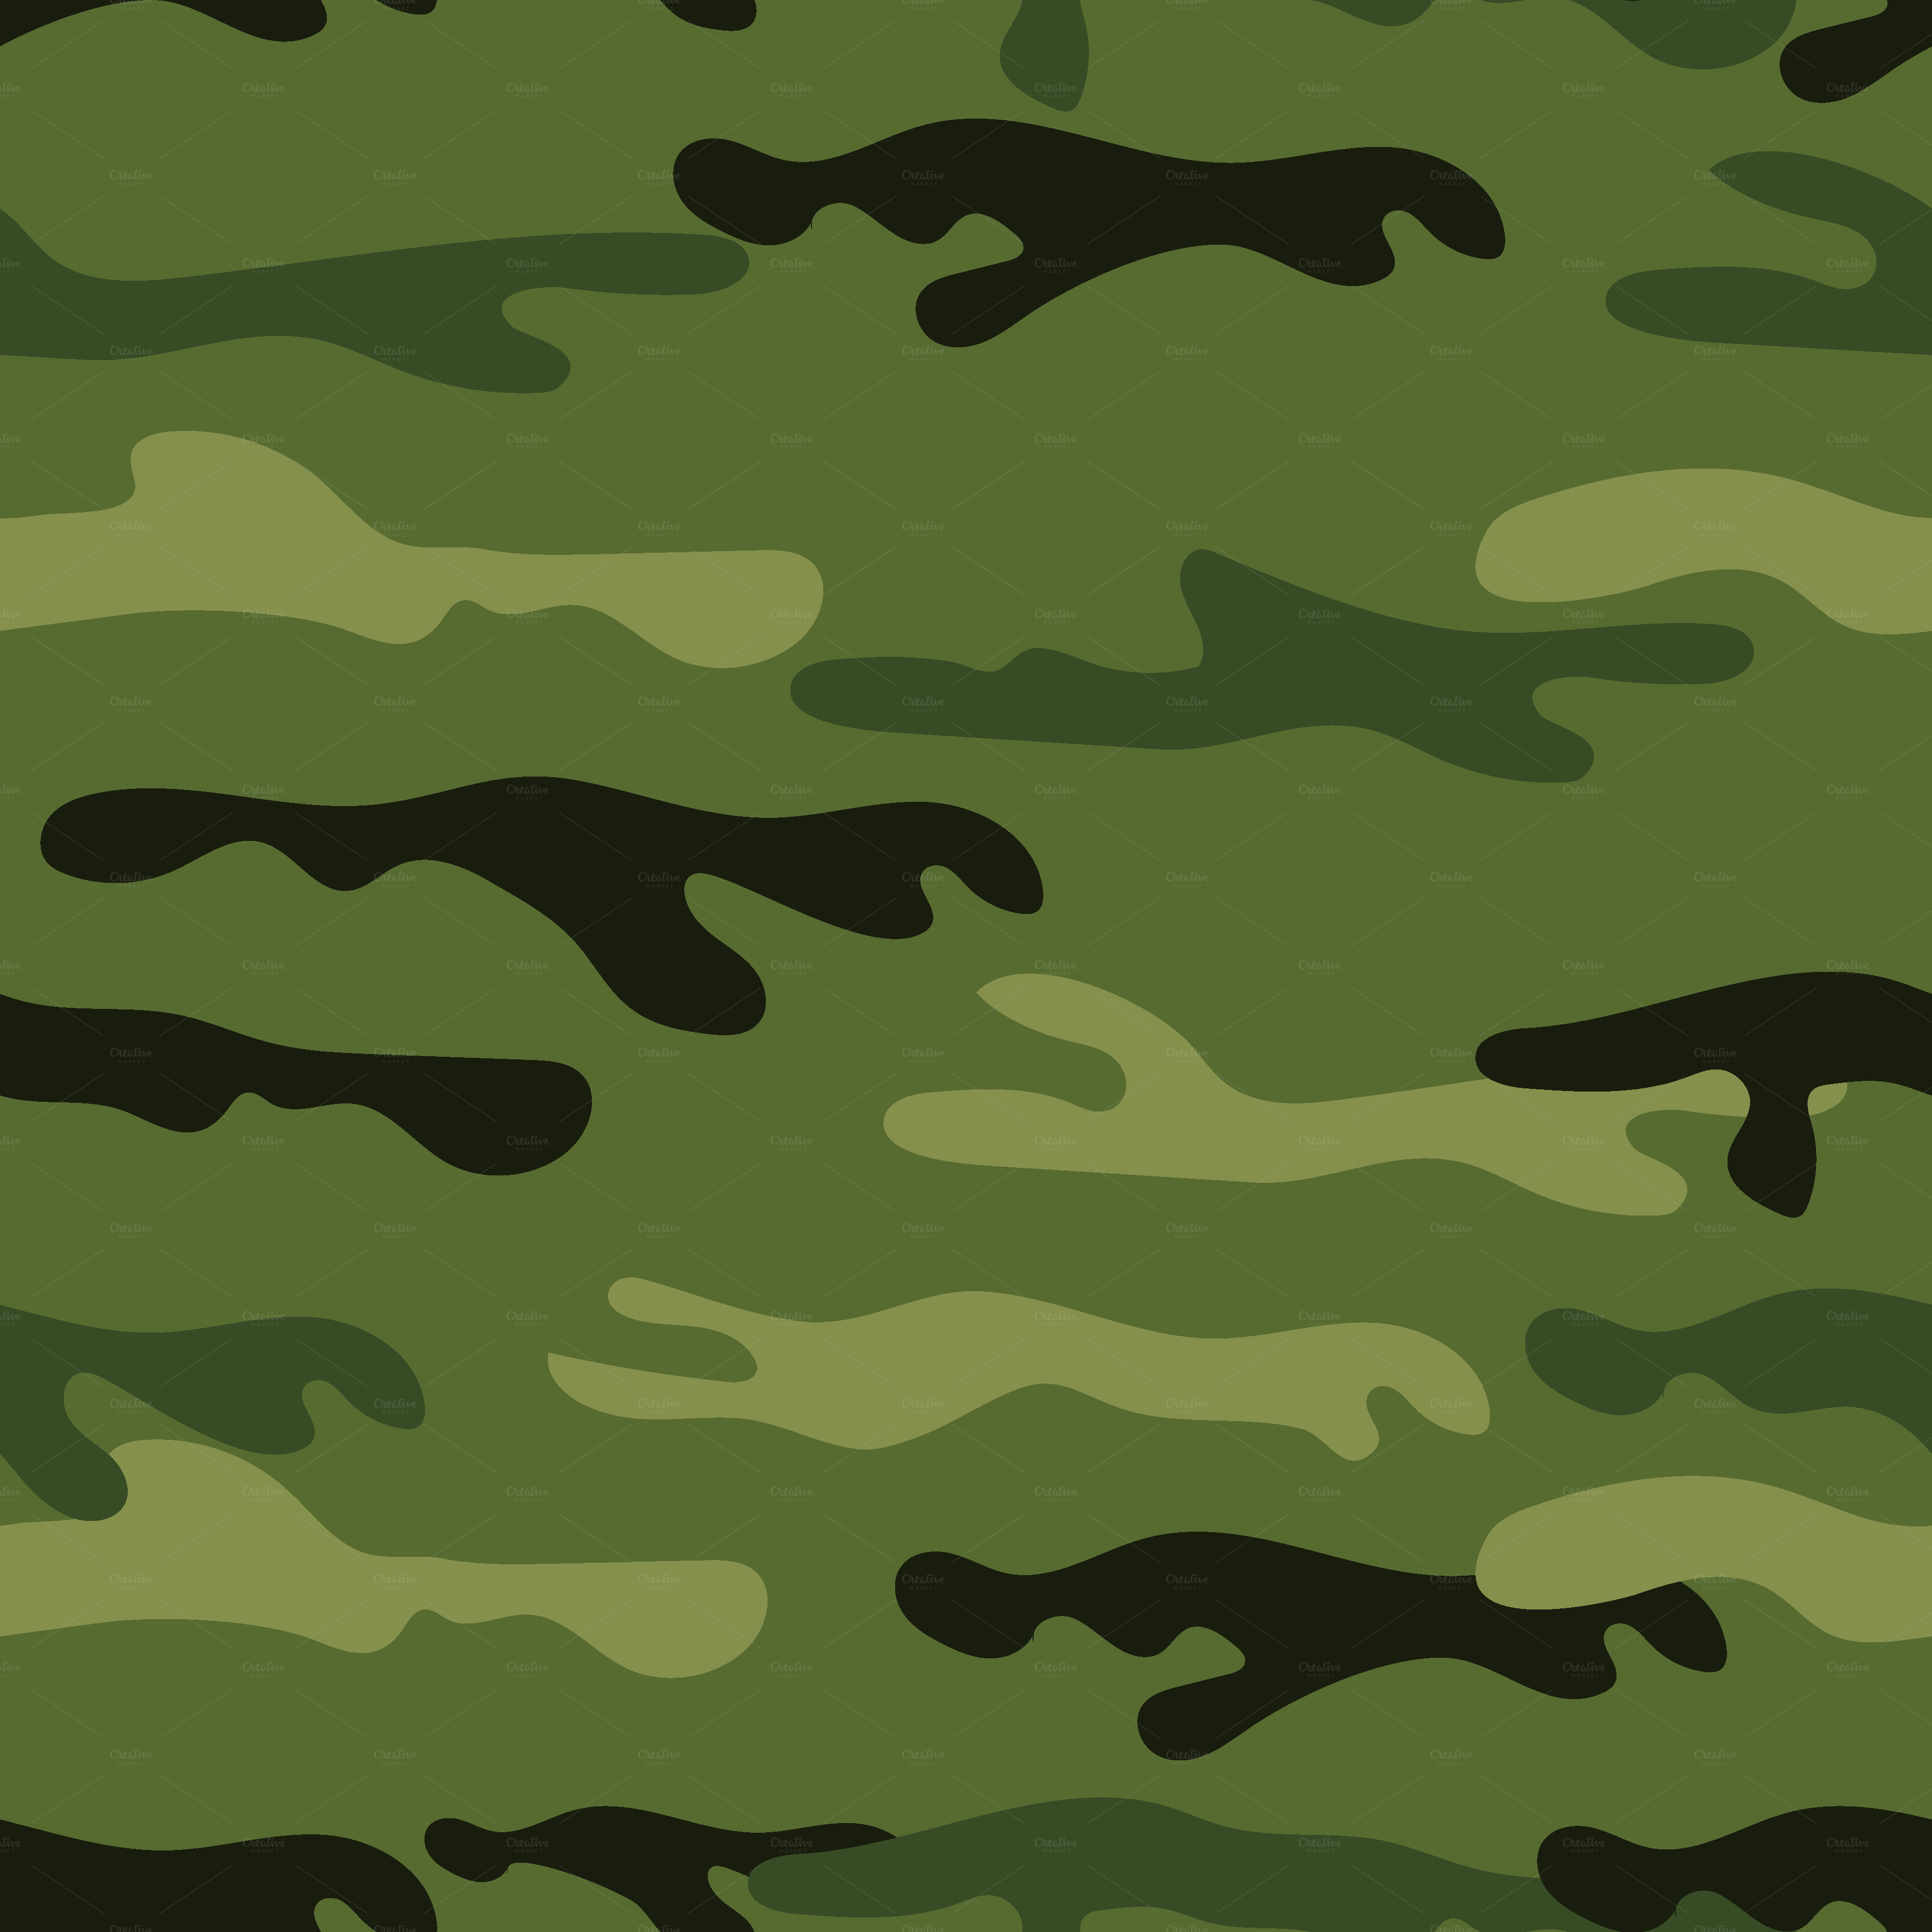 18Camouflage Military Digital Paper by Ivan Negin on @creativemarket ...